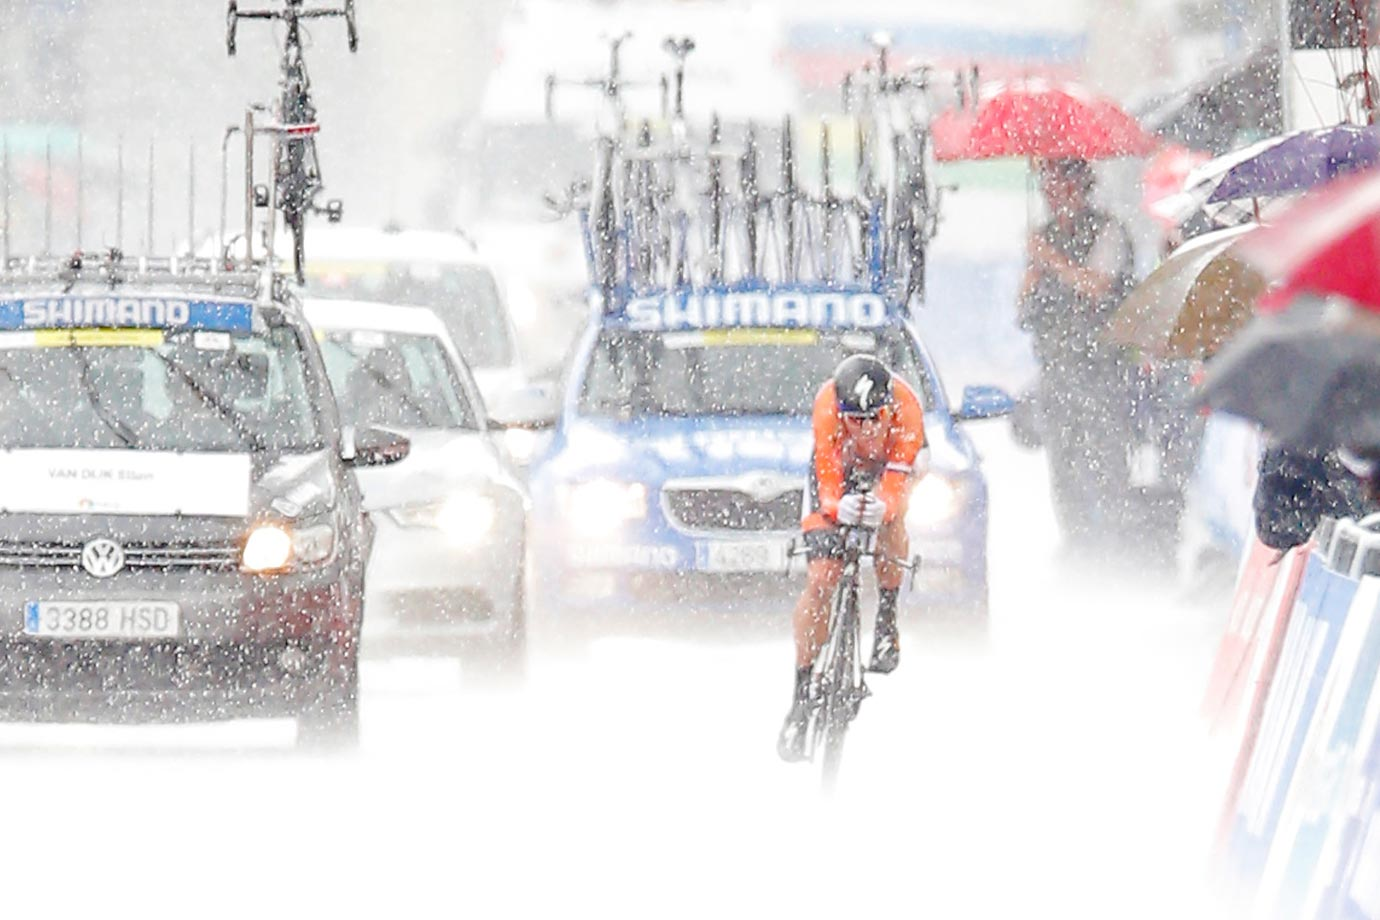 Defending champion Ellen van Dijk of The Netherlands competes in pouring rain to take a seventh place in the individual time trial event at the Road Cycling World Championships in Ponferrada, northwestern Spain.